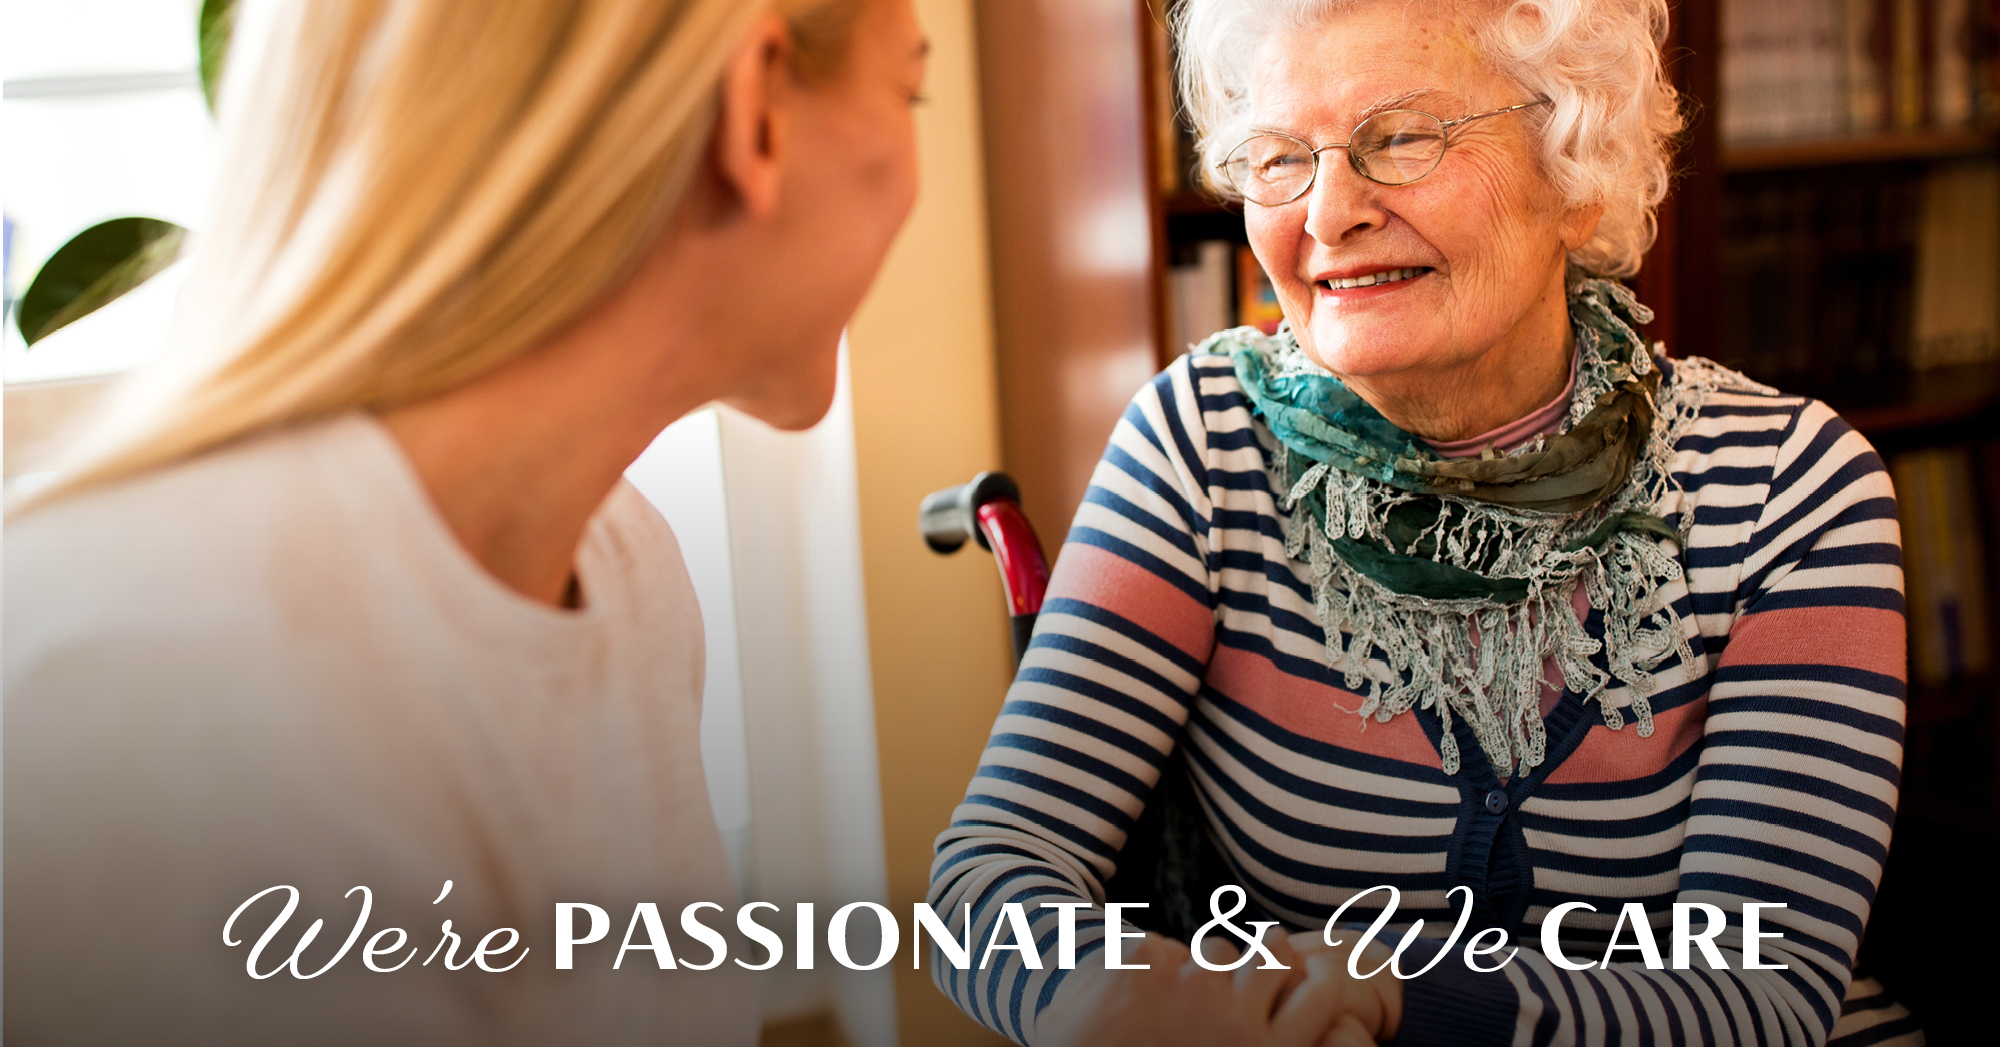 Parmer Woods at North Austin | We're Passionate & We Care